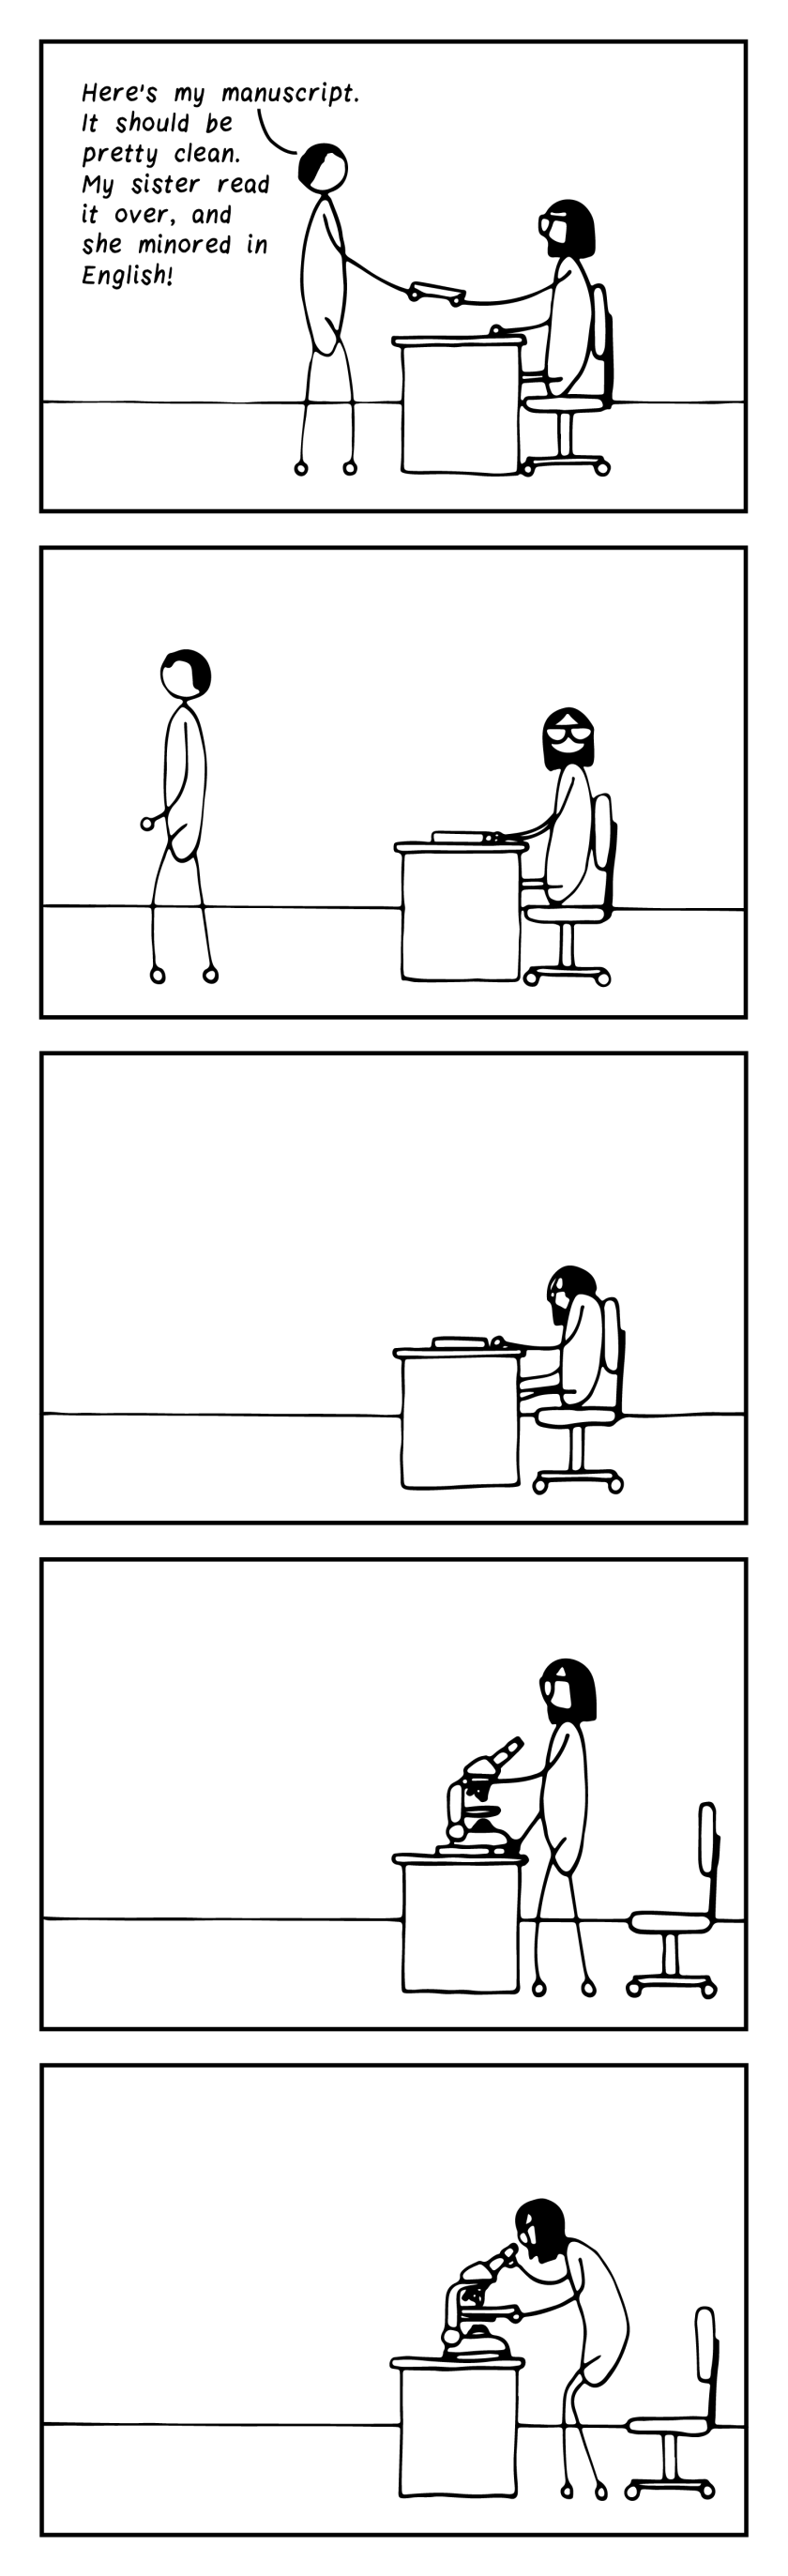 """Five-panel cartoon. Panel 1: an author hands over a manuscript to bespectacled editor, sitting at her desk. He says, """"Here's my manuscript. It should be pretty clean. My sister read it over, and she minored in English!"""" Panel 2: He walks away as bespectacled editor looks into the camera skeptically. Panel 3: Bespectacled editor reaches for something under her desk. Panel 4: She puts a microscope on the desk. Panel 5: She puts the manuscript in the microscope and looks into it."""